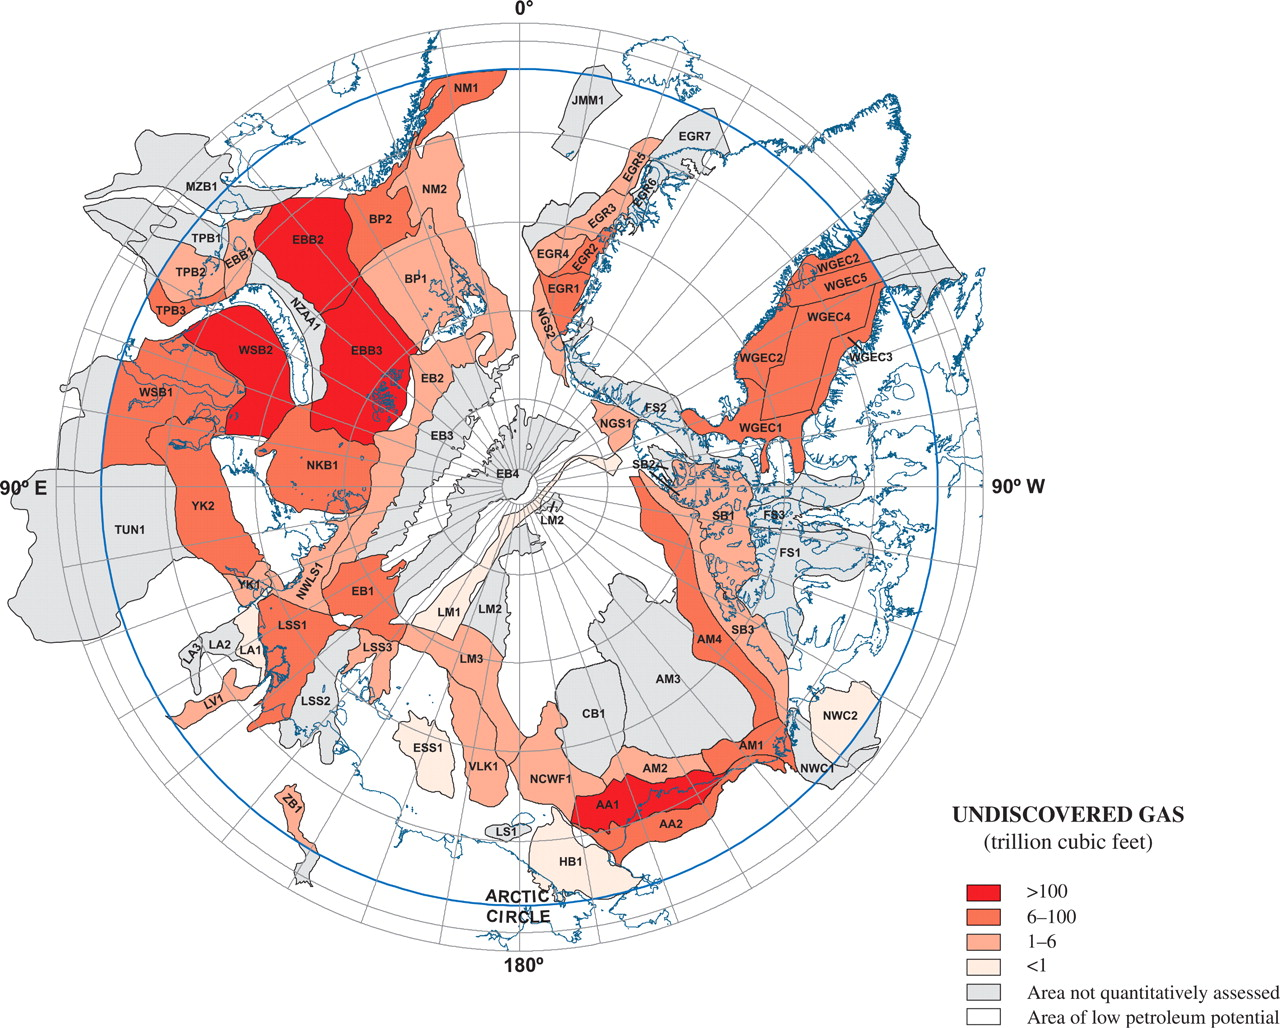 map_Arctic_borders_hydrocarbon_gas_undiscovered_resources_2009